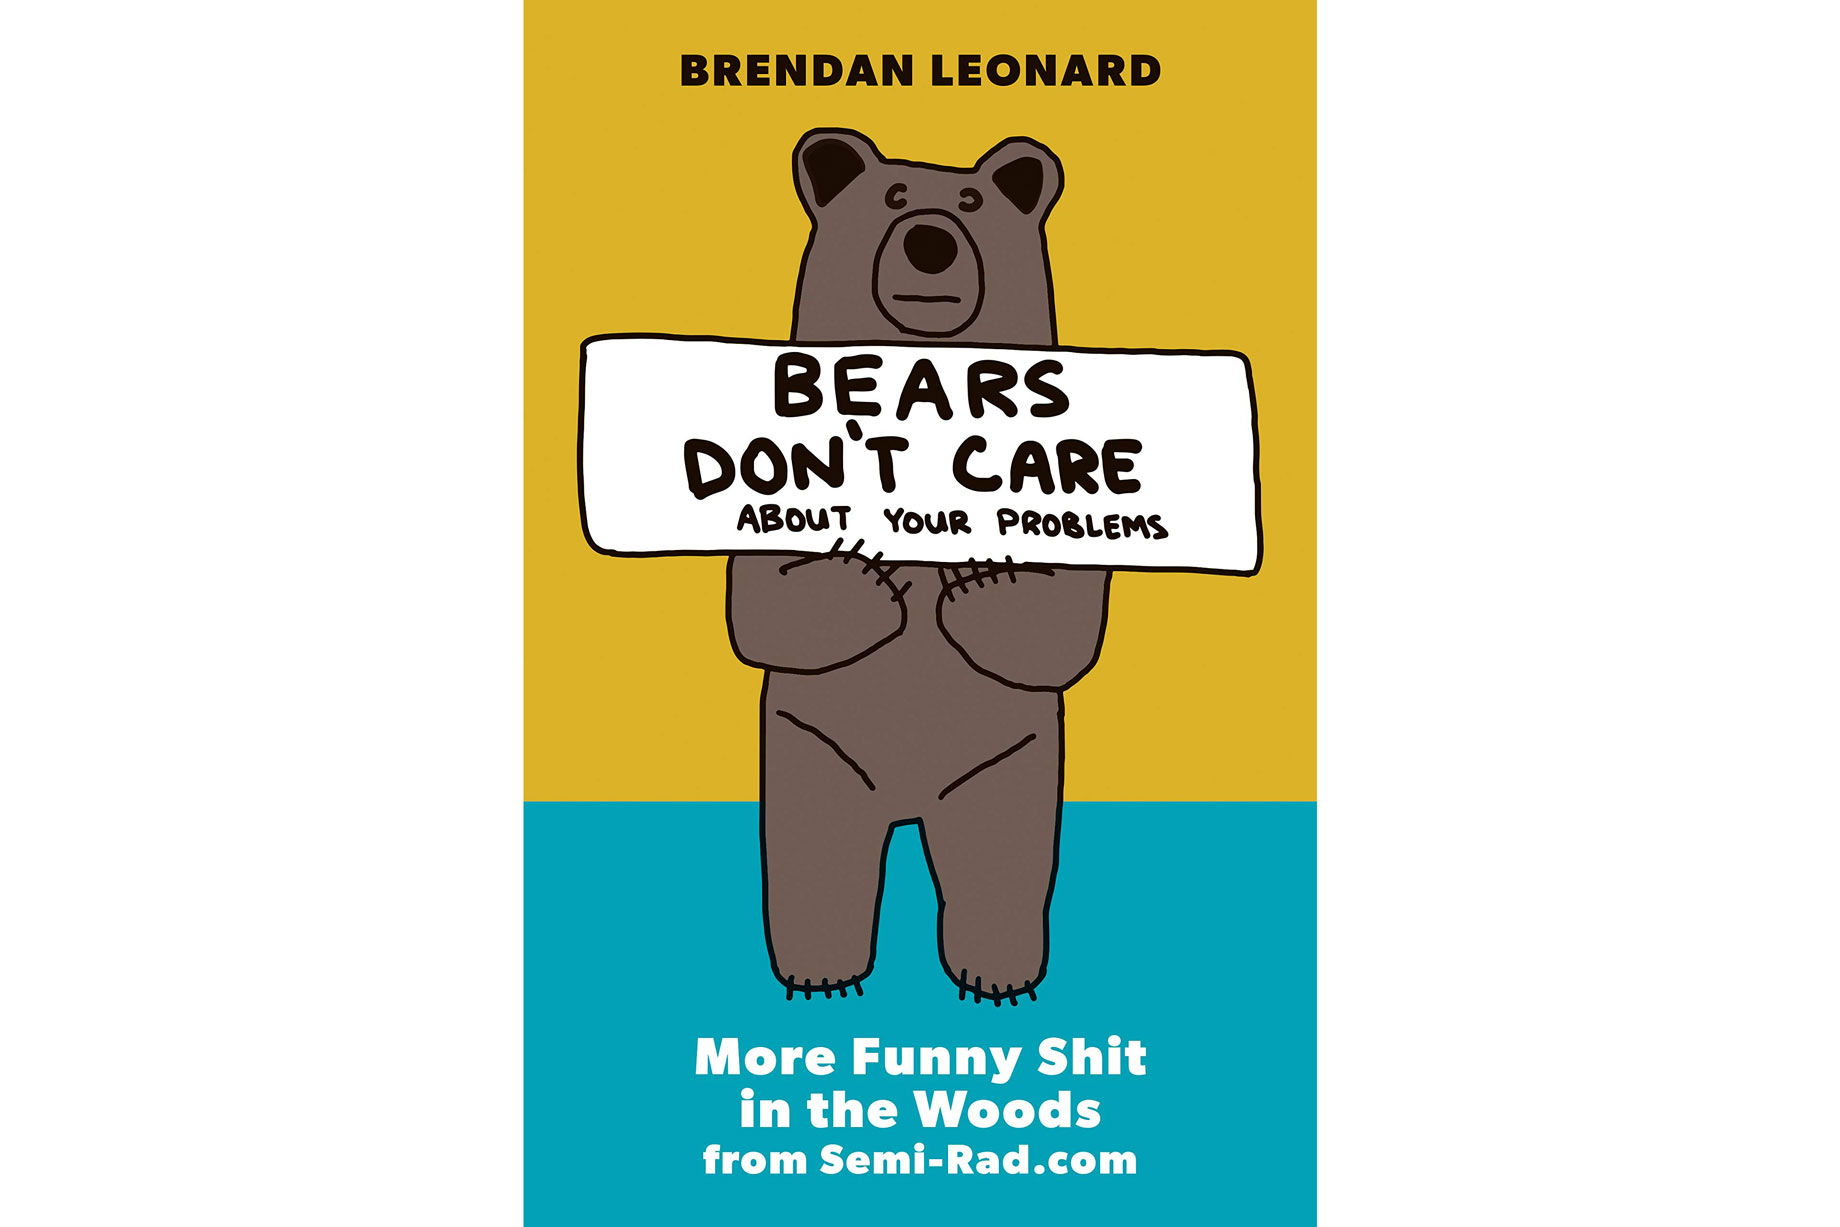 Bears Don't Care About Your Problems book Brendan Leonard